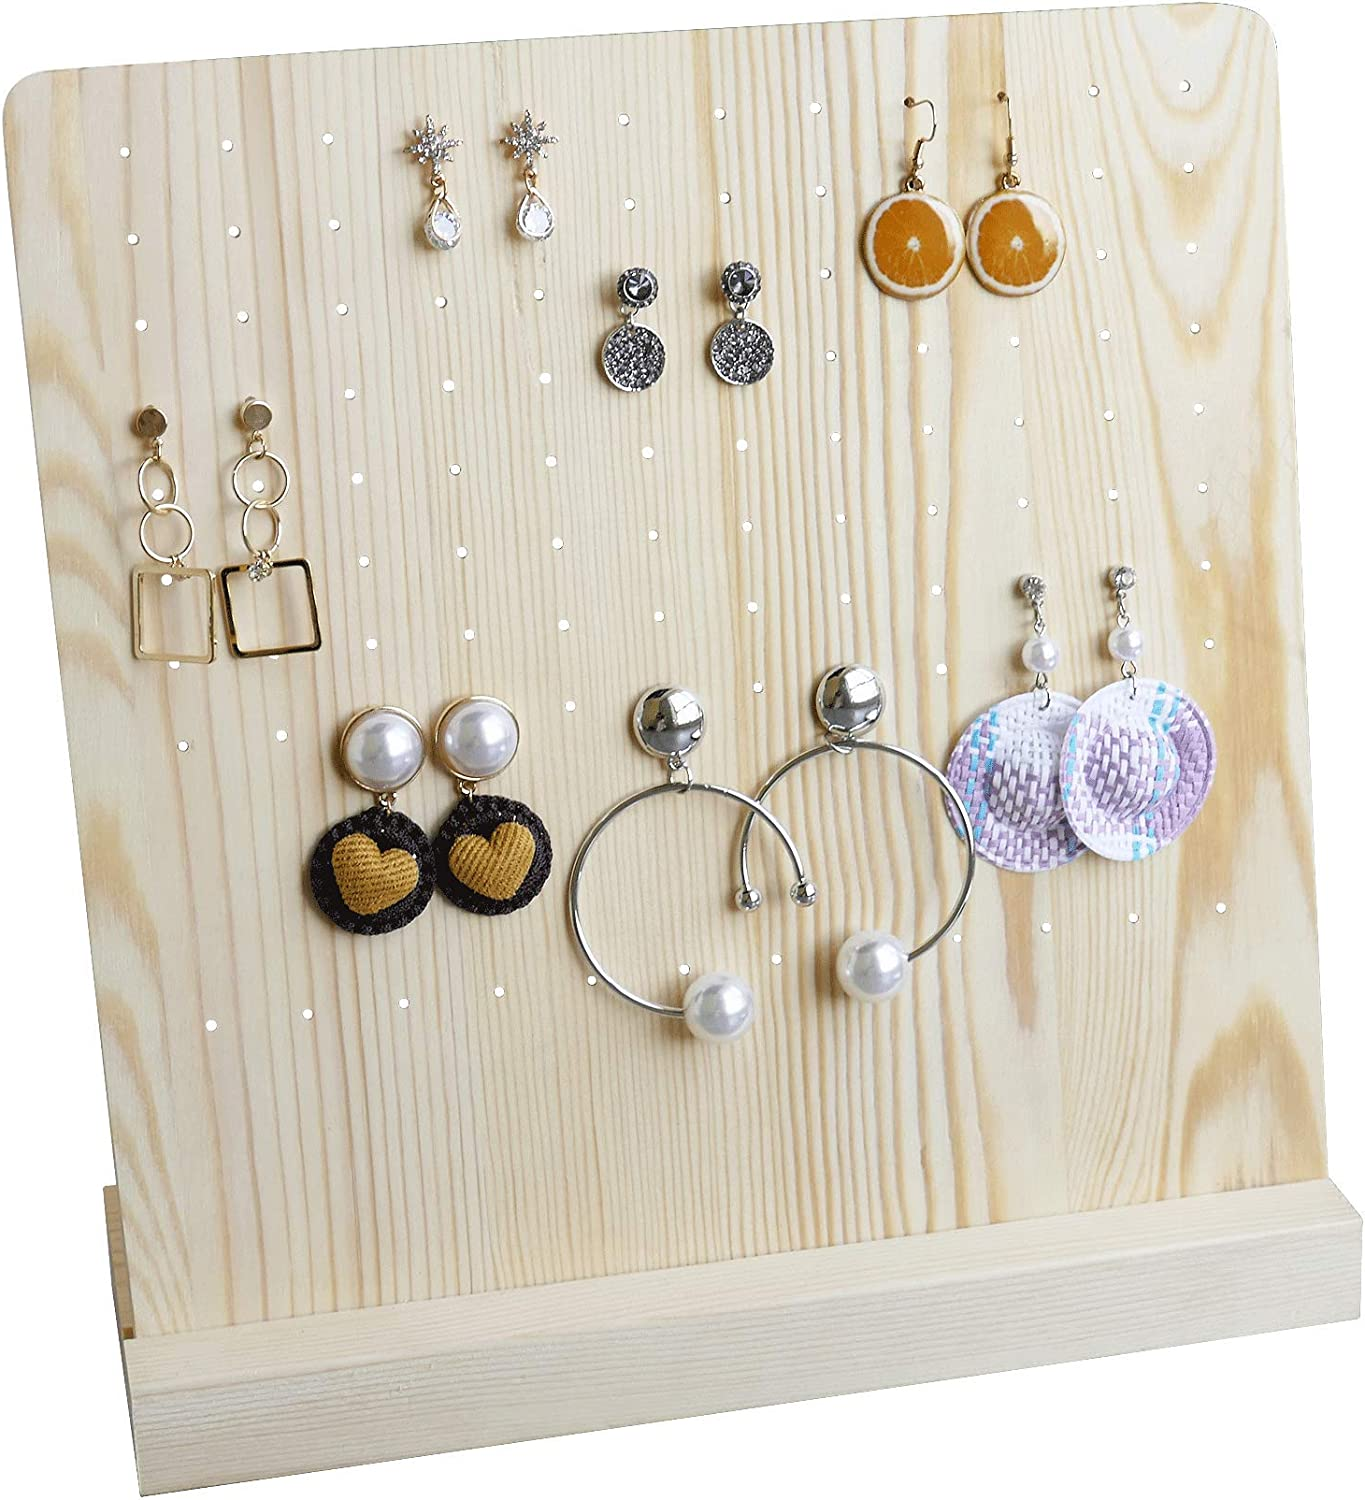 NIKKY HOME Wood Earring Holder Stand Display 108 Holes Jewelry Organizer